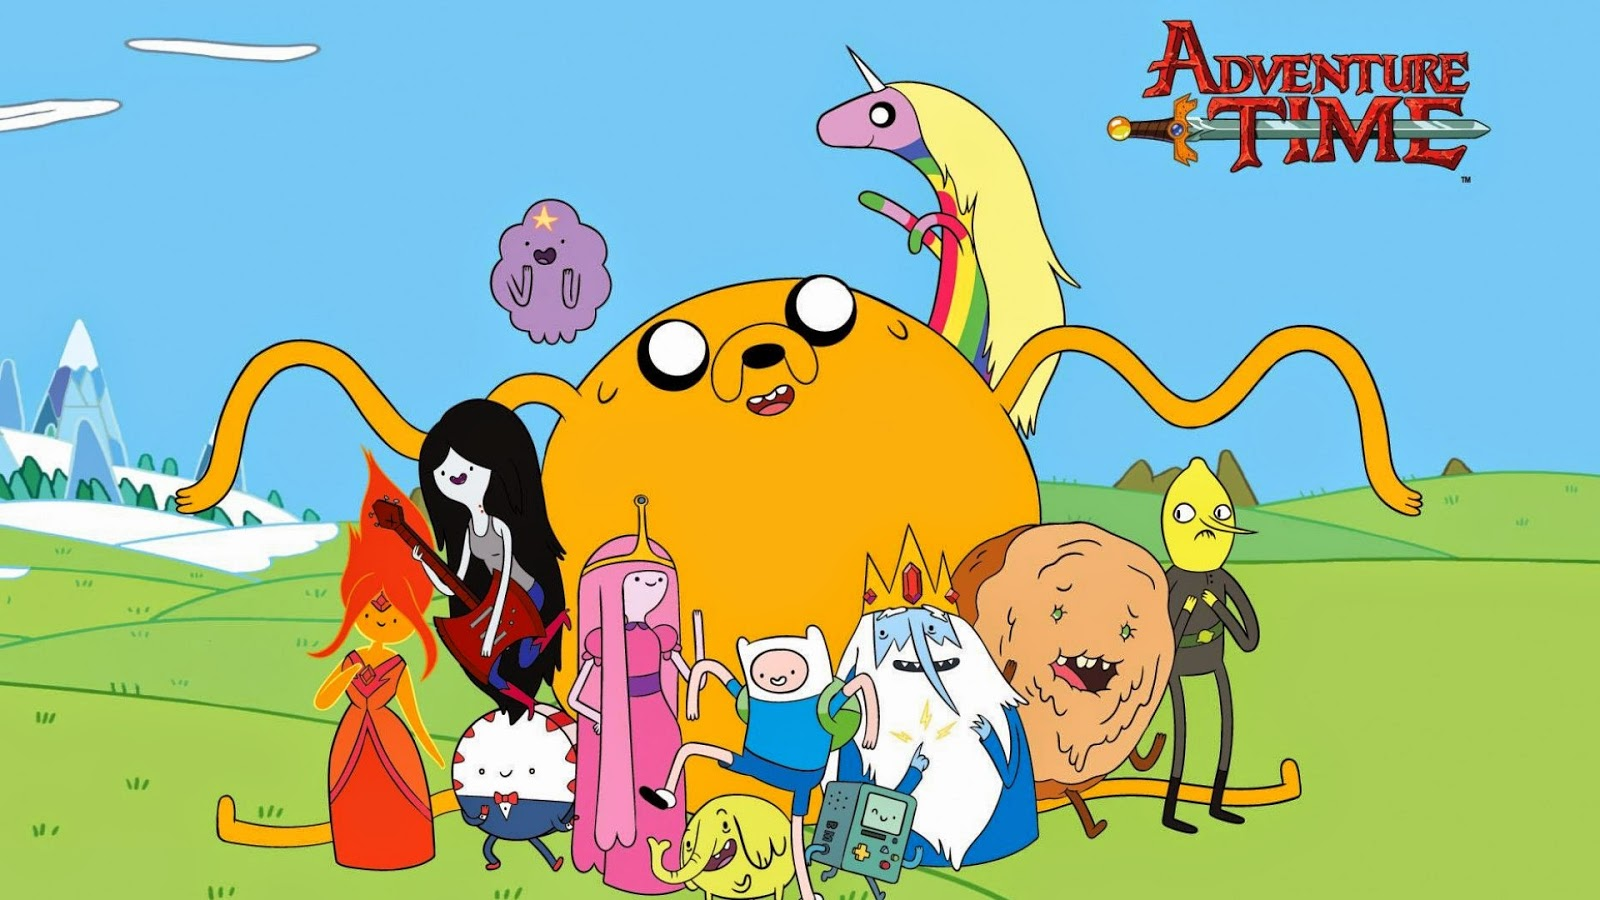 Adventure Time Animated Gif Wallpaper HD Cool Image - Film ...